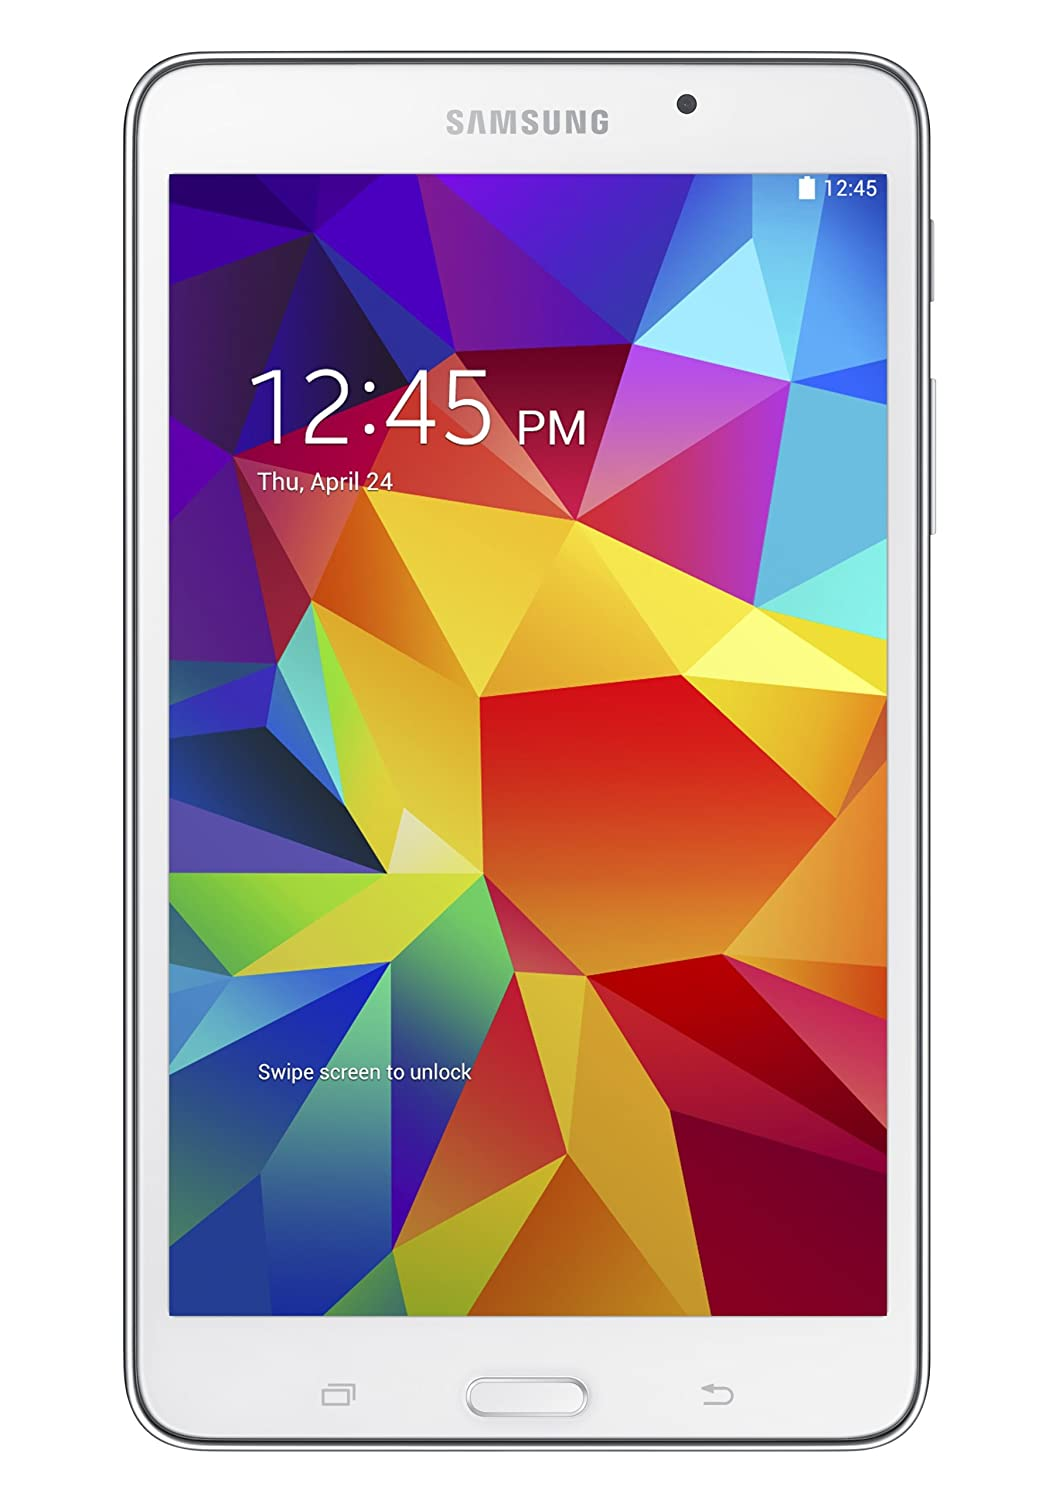 Samsung Galaxy Tab 4 7.0 8GB Color blanco - Tablet (1,2 GHz, 1,5 GB, 8 GB, MicroSD (TransFlash), Flash, 17,78 cm (7